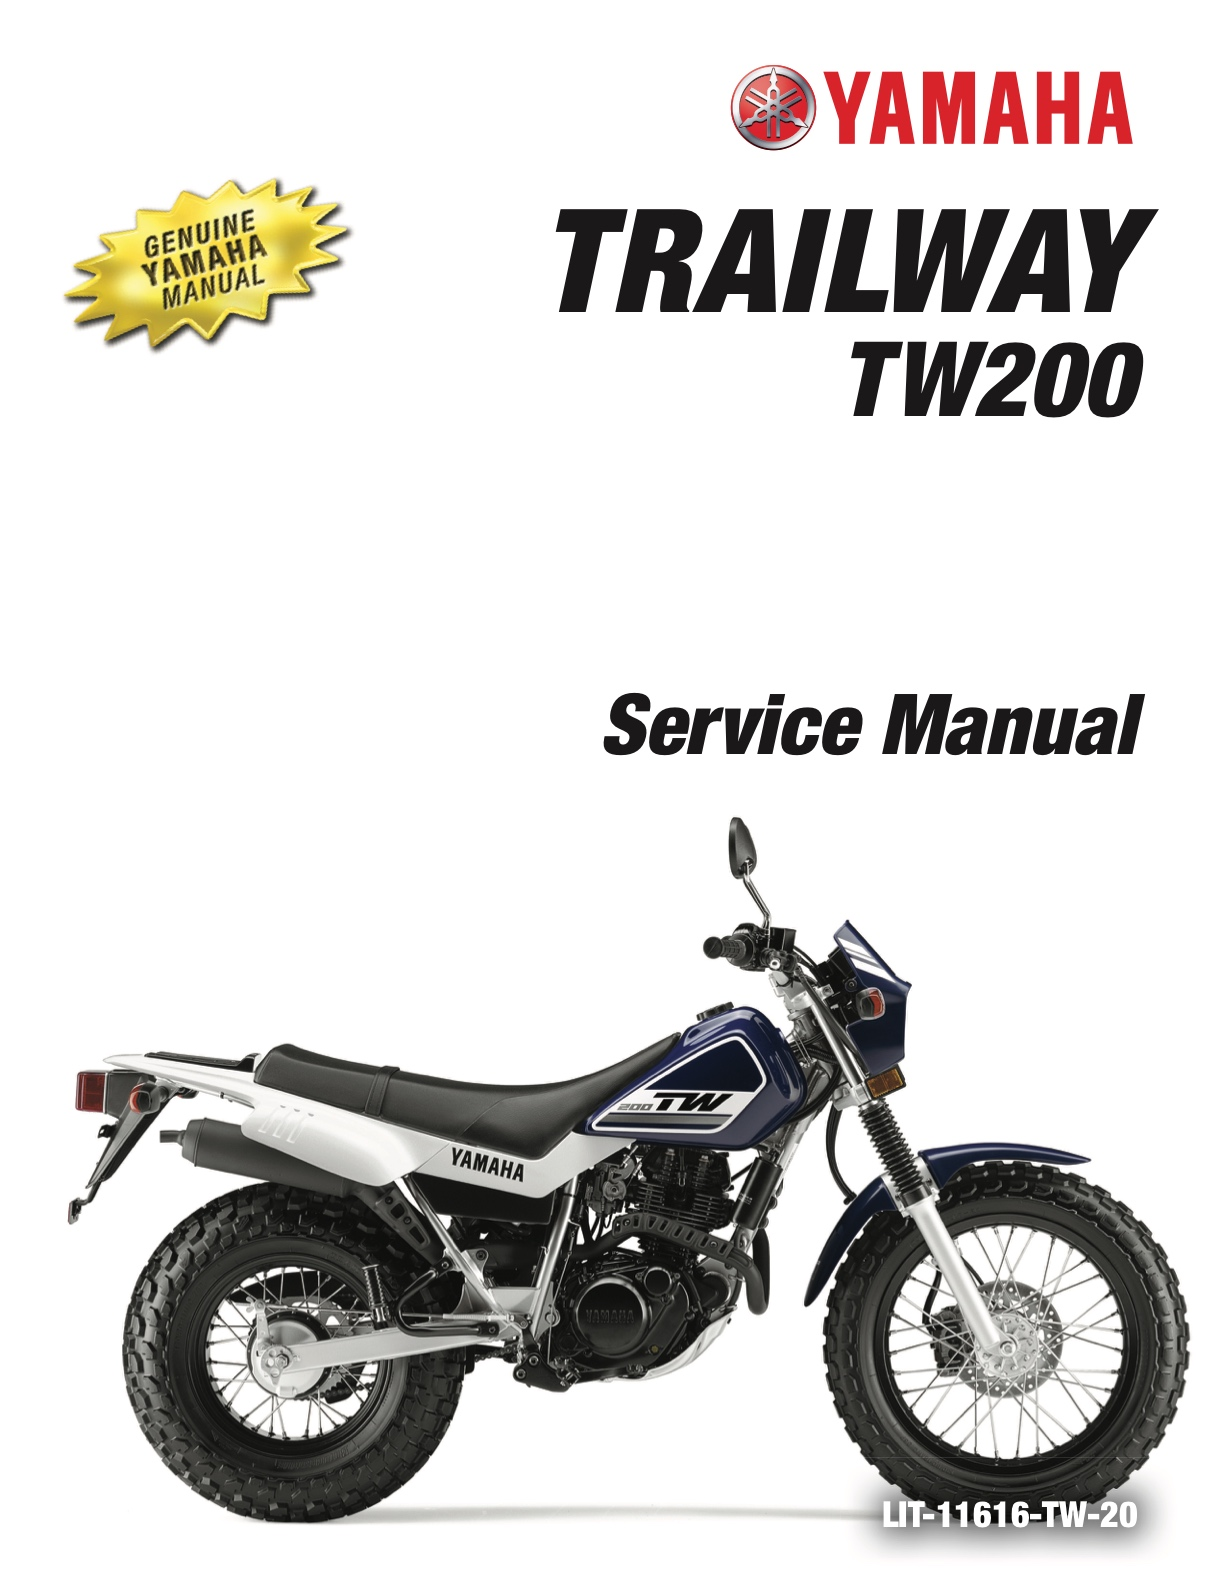 YAMAHA TRAILWAY TW200 2001-2018 Workshop Service Manual